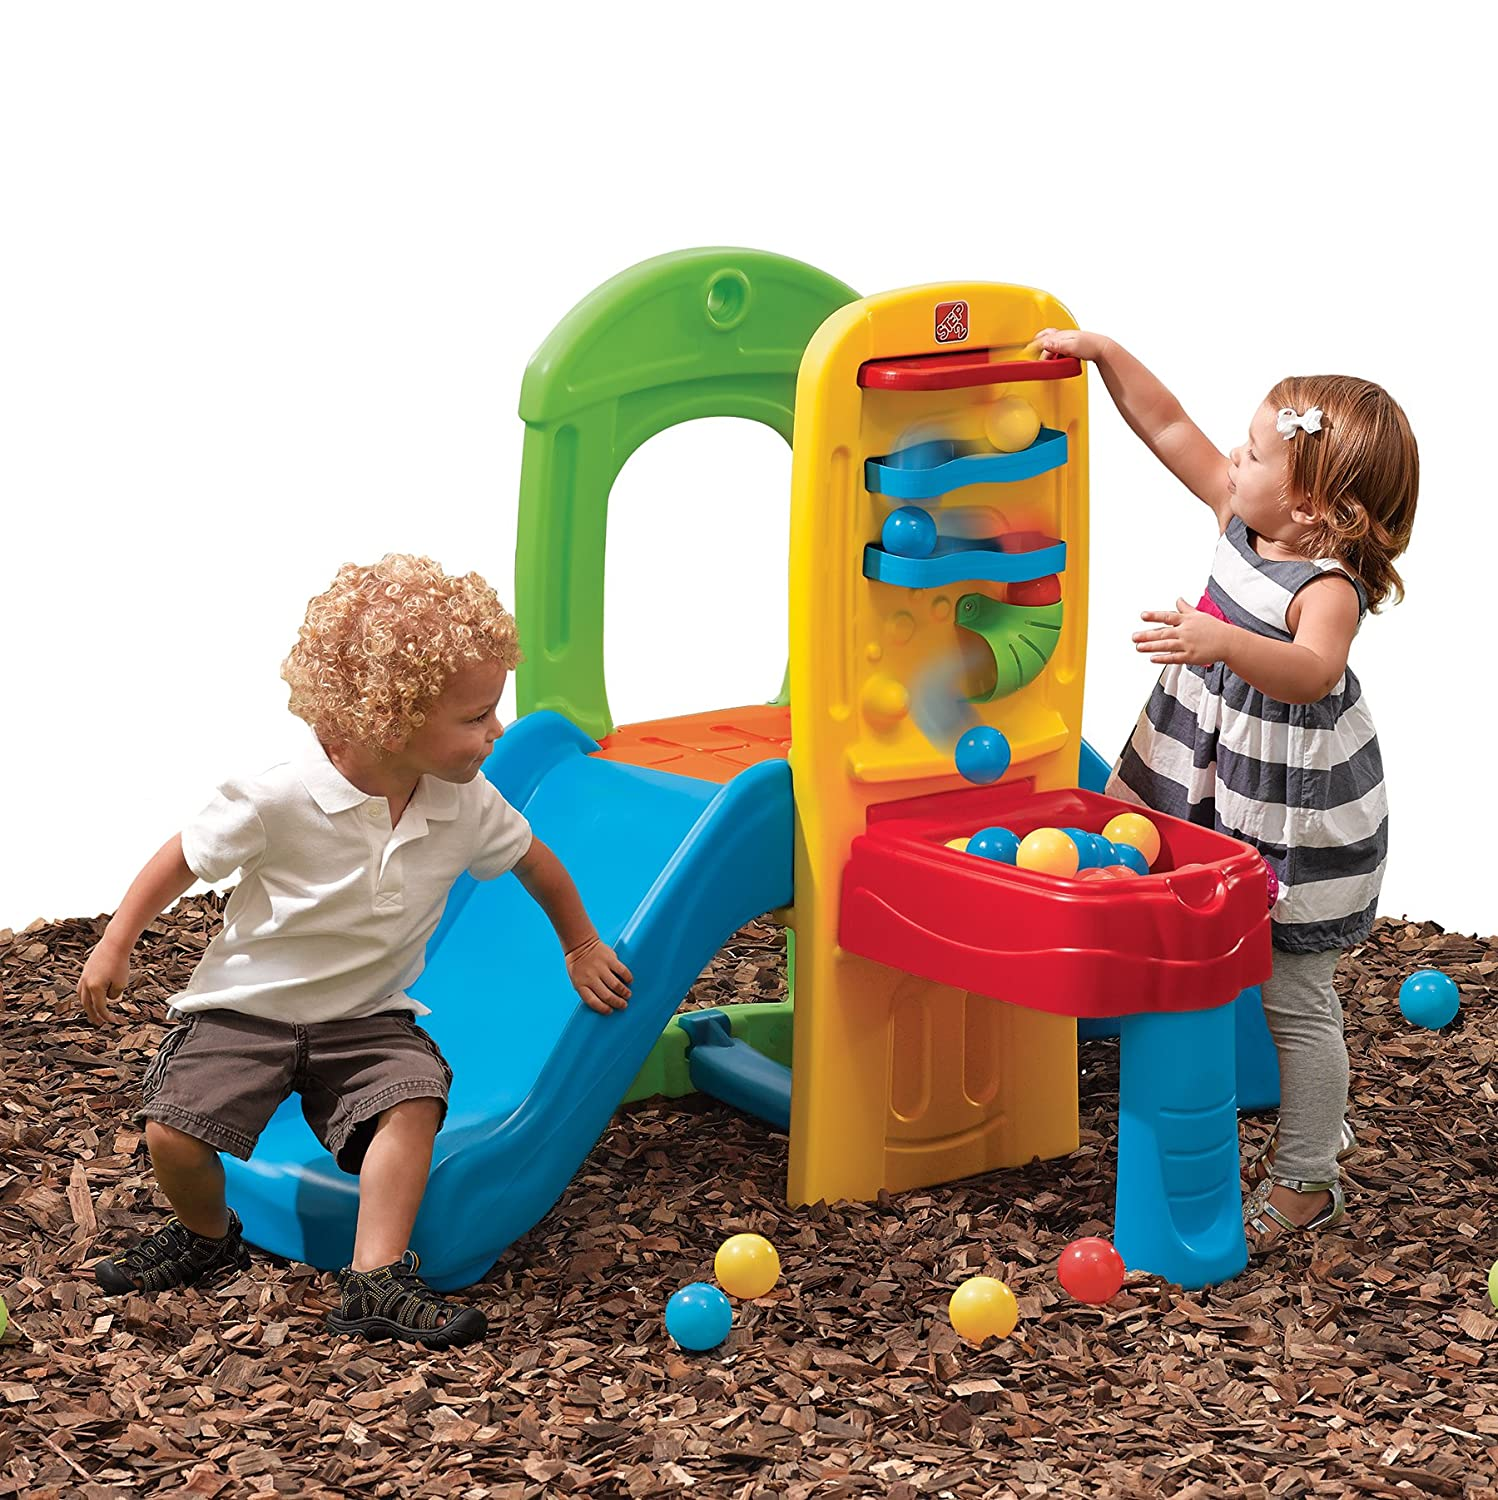 Amazon Step2 Play Ball Fun Climber With Slide For Toddlers